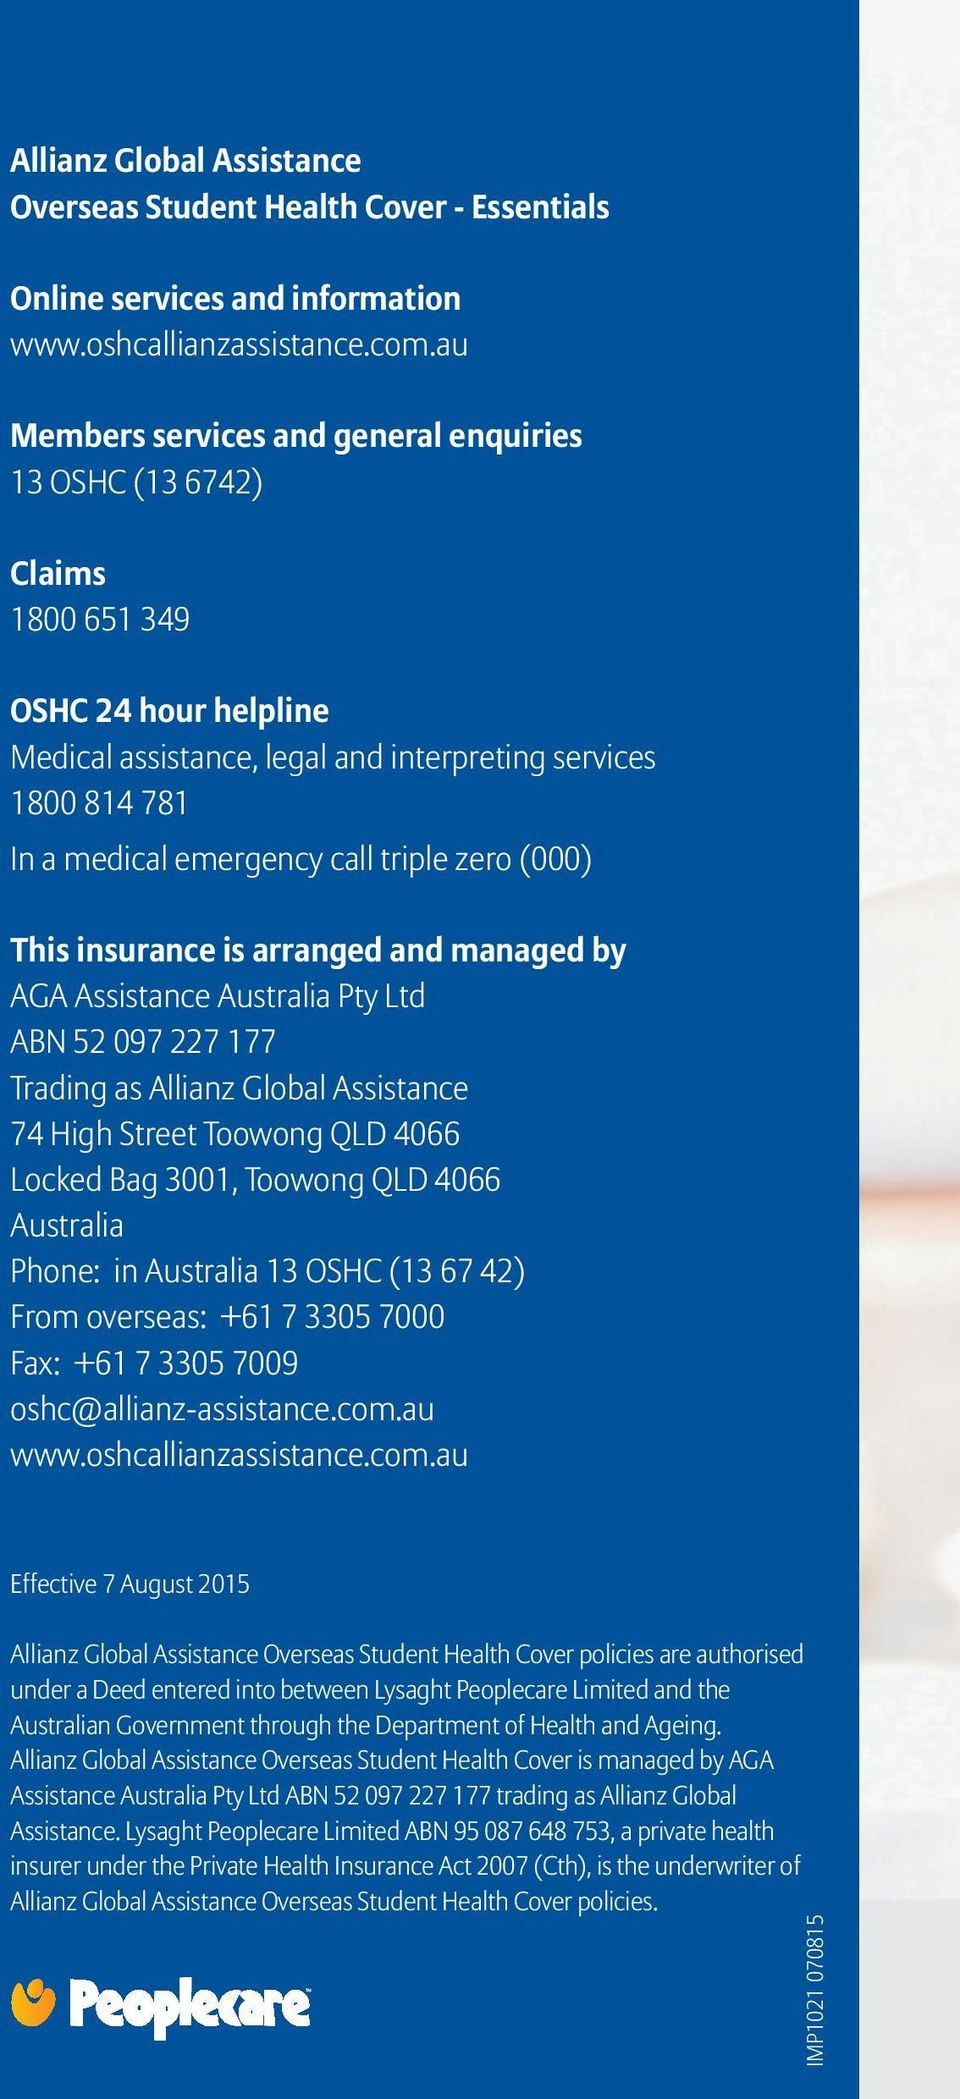 triple zero (000) This insurance is arranged and managed by AGA Assistance Australia Pty Ltd ABN 52 097 227 177 Trading as Allianz Global Assistance 74 High Street Toowong QLD 4066 Locked Bag 3001,